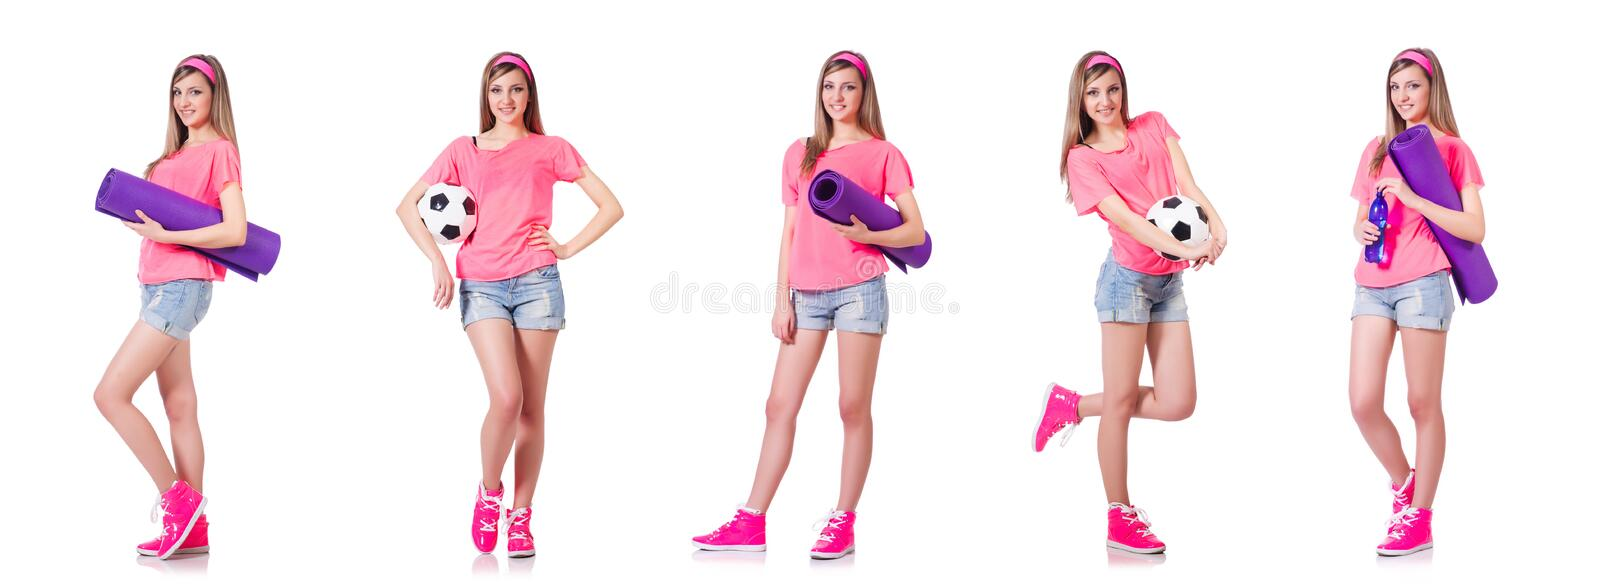 The young woman doing exercises on white stock photo